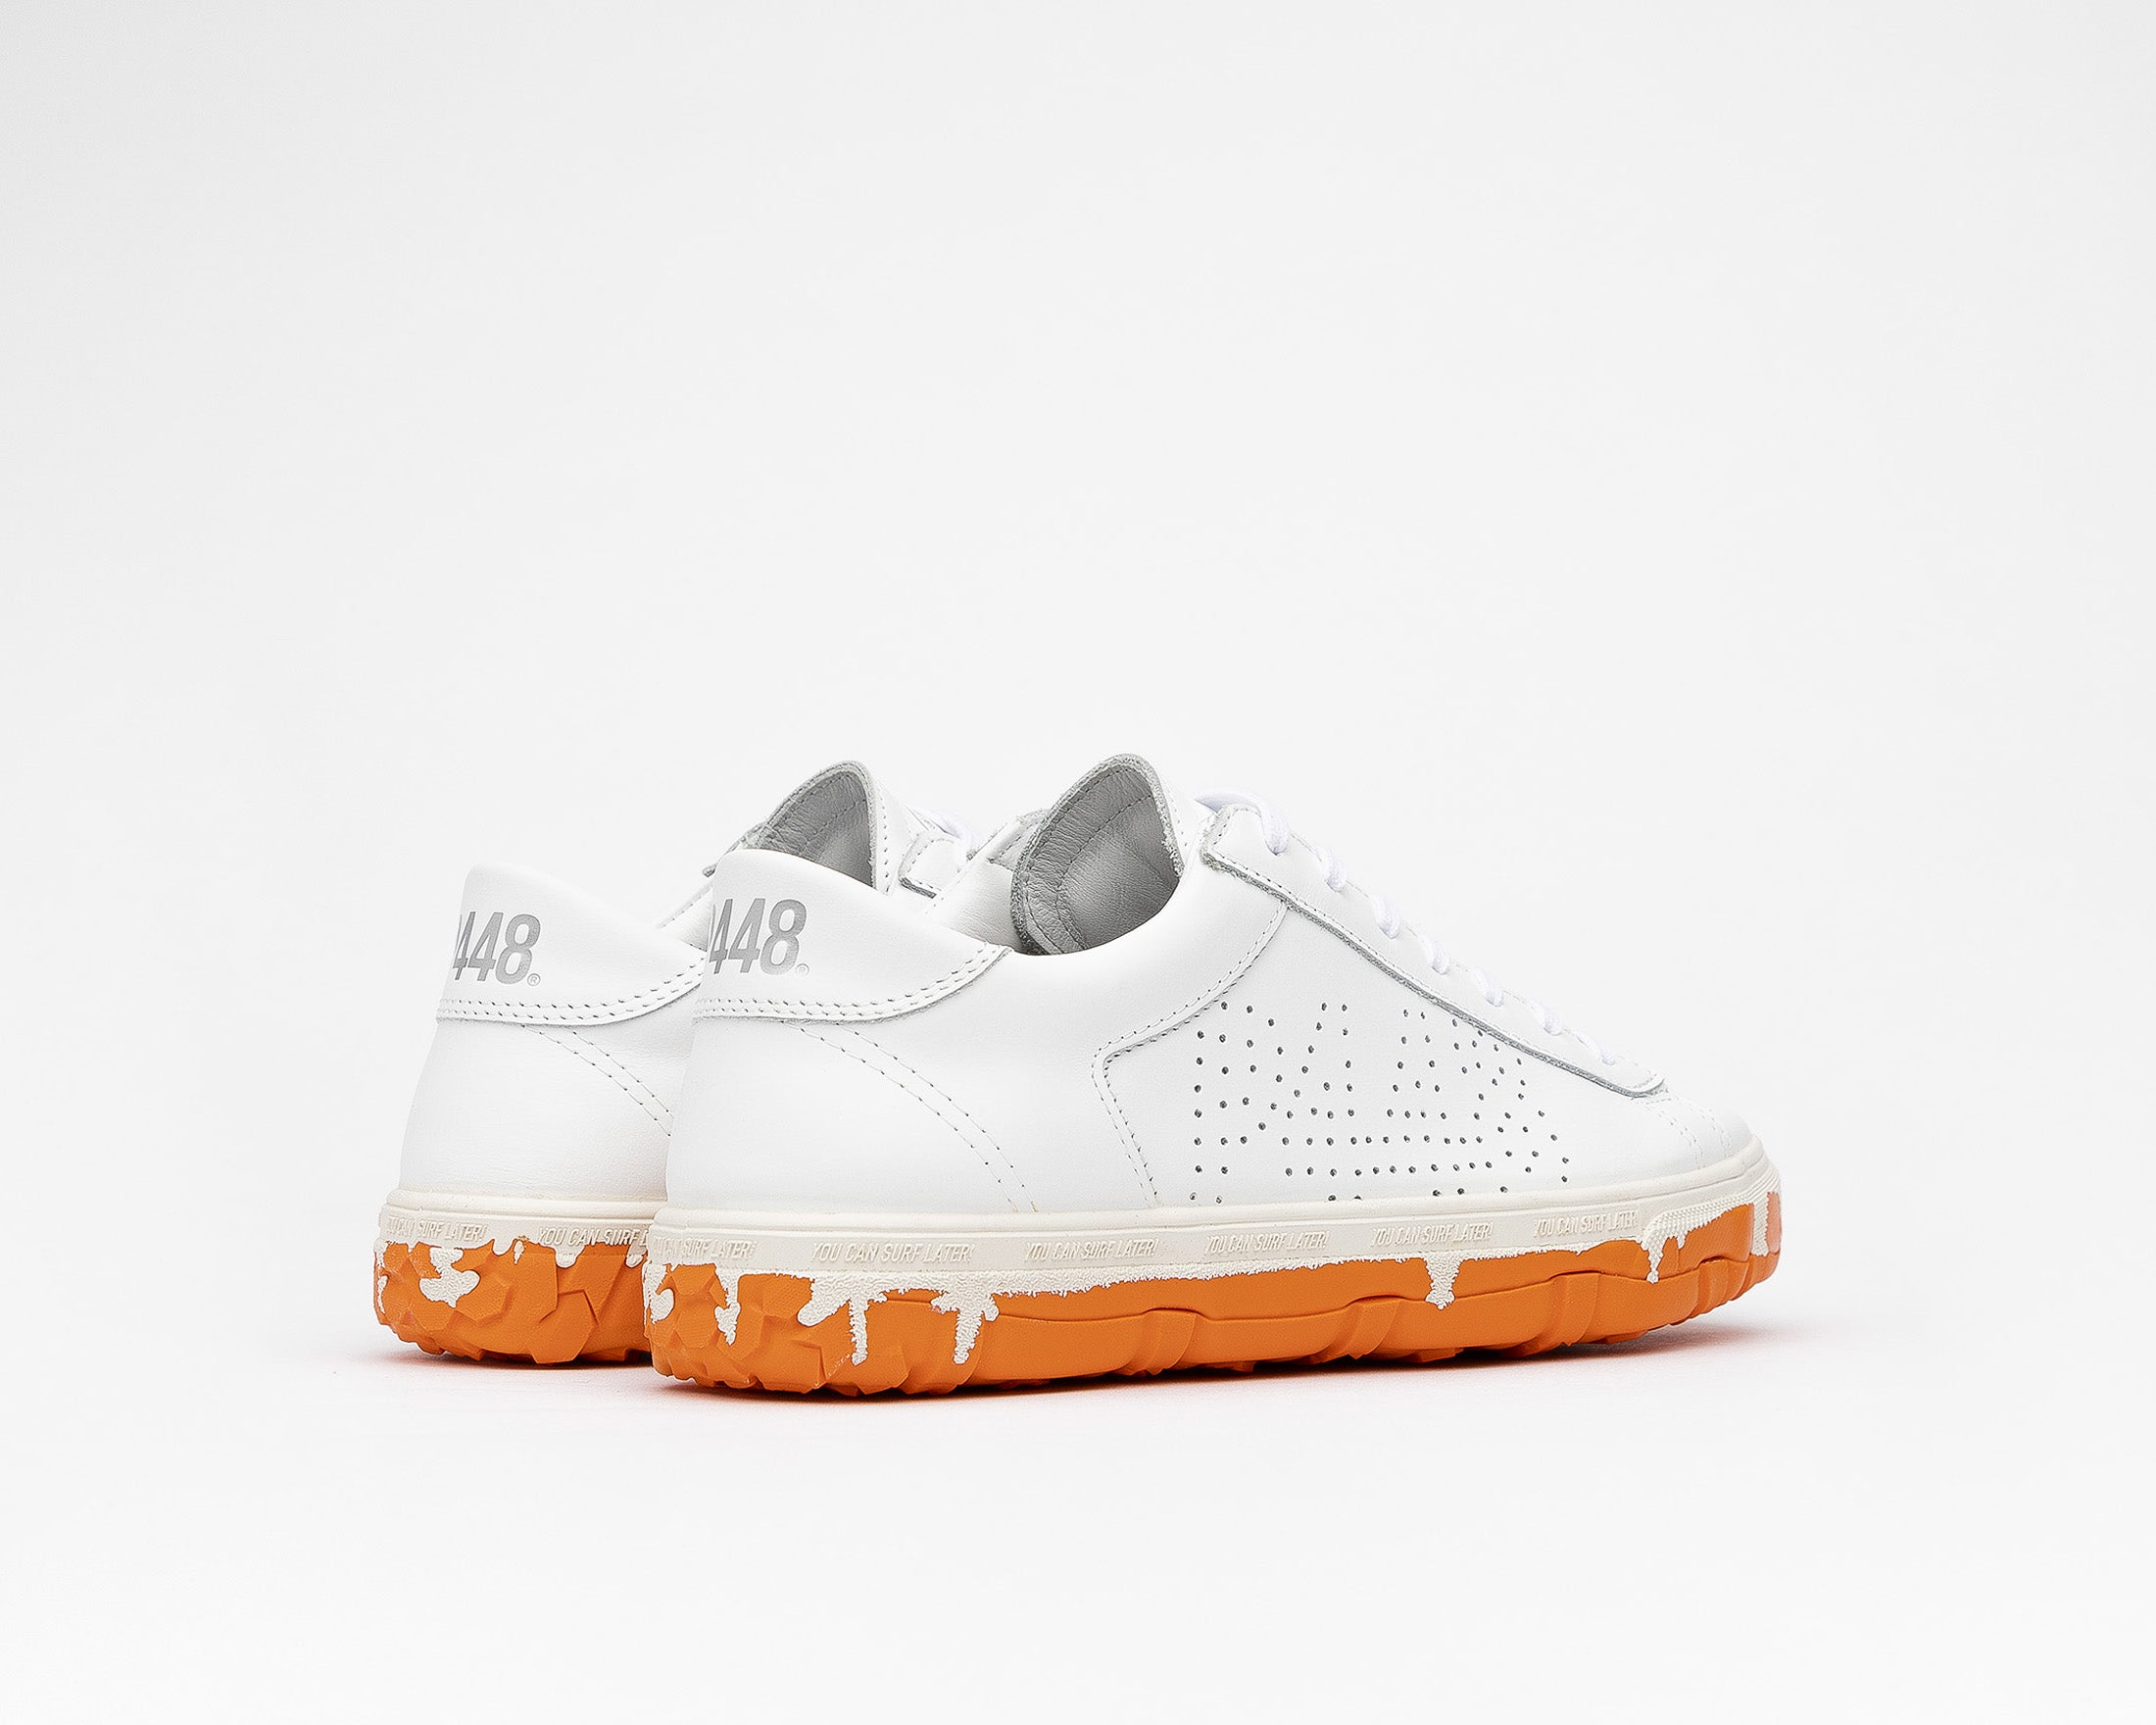 Y.C.S.L. Vibram Low-Top Sneaker in White/Orange - Back